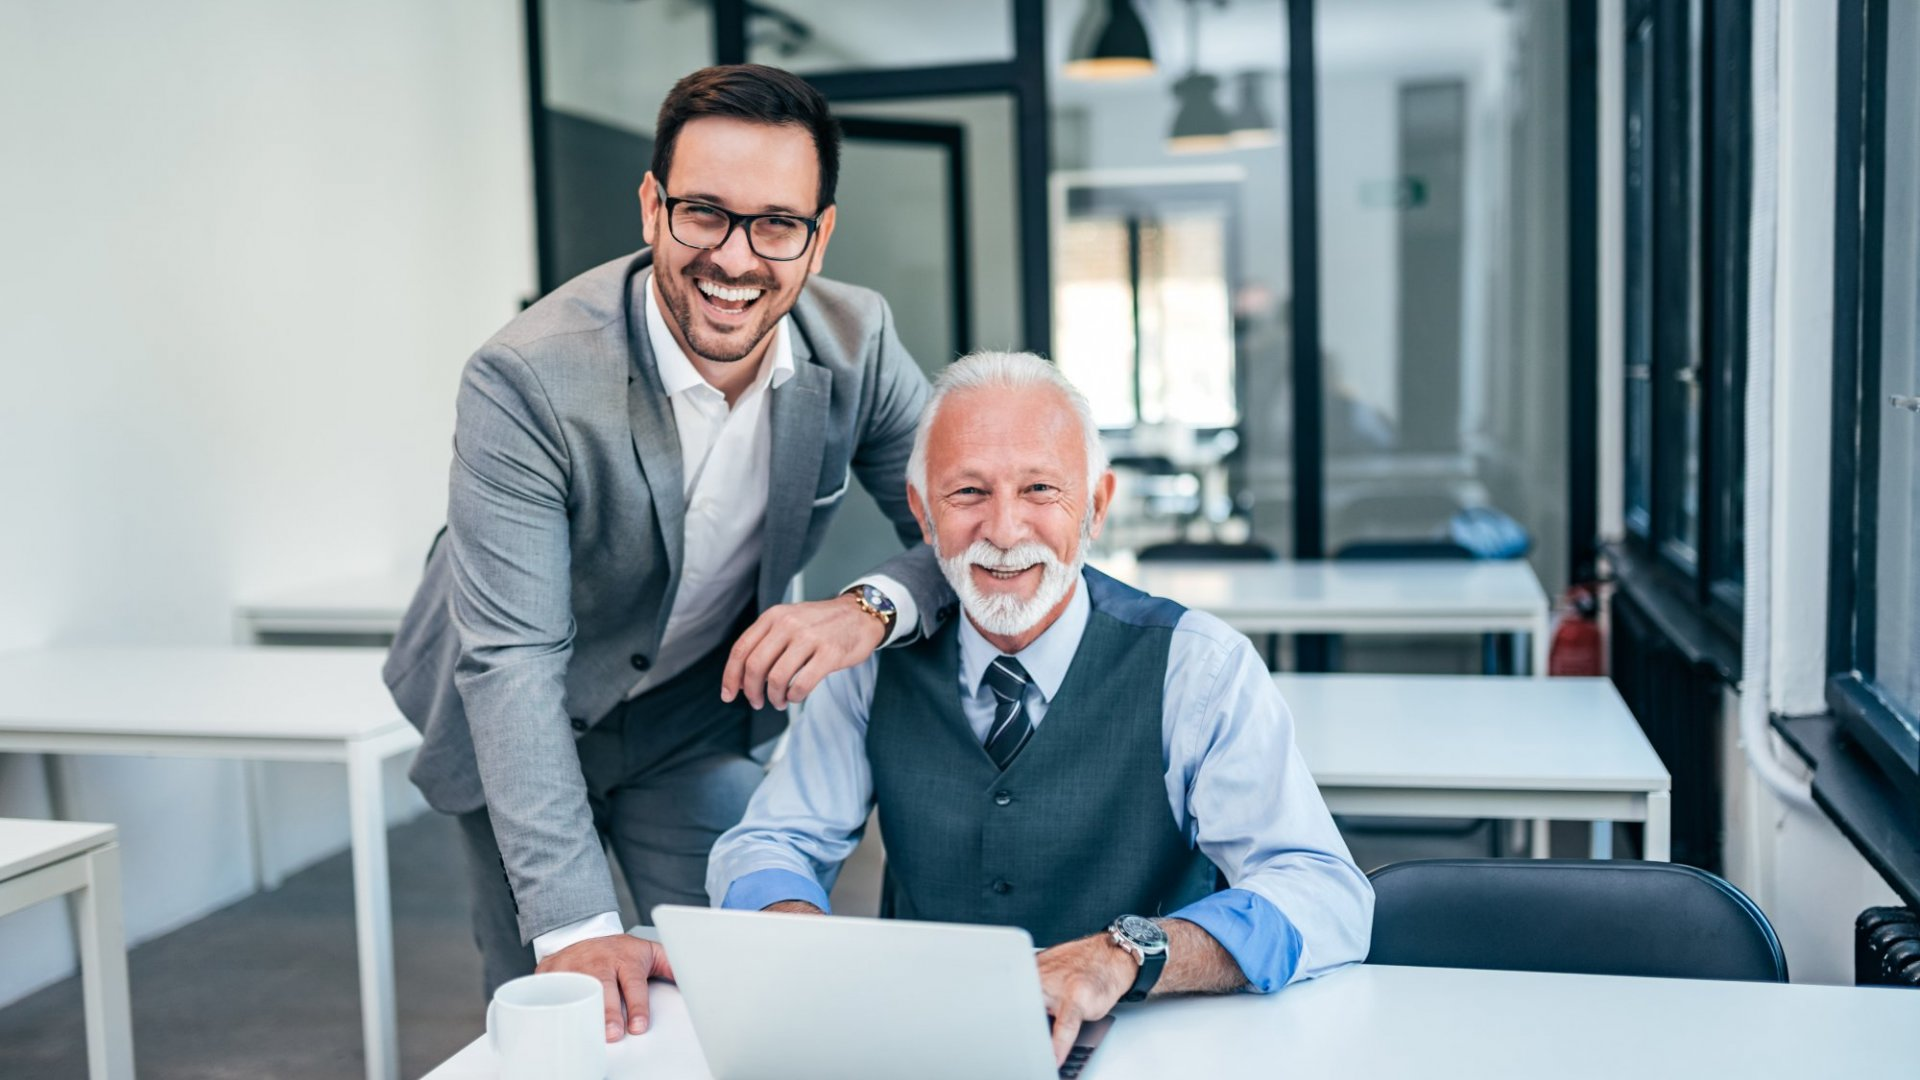 How to Engage a Multi-Generational Workforce